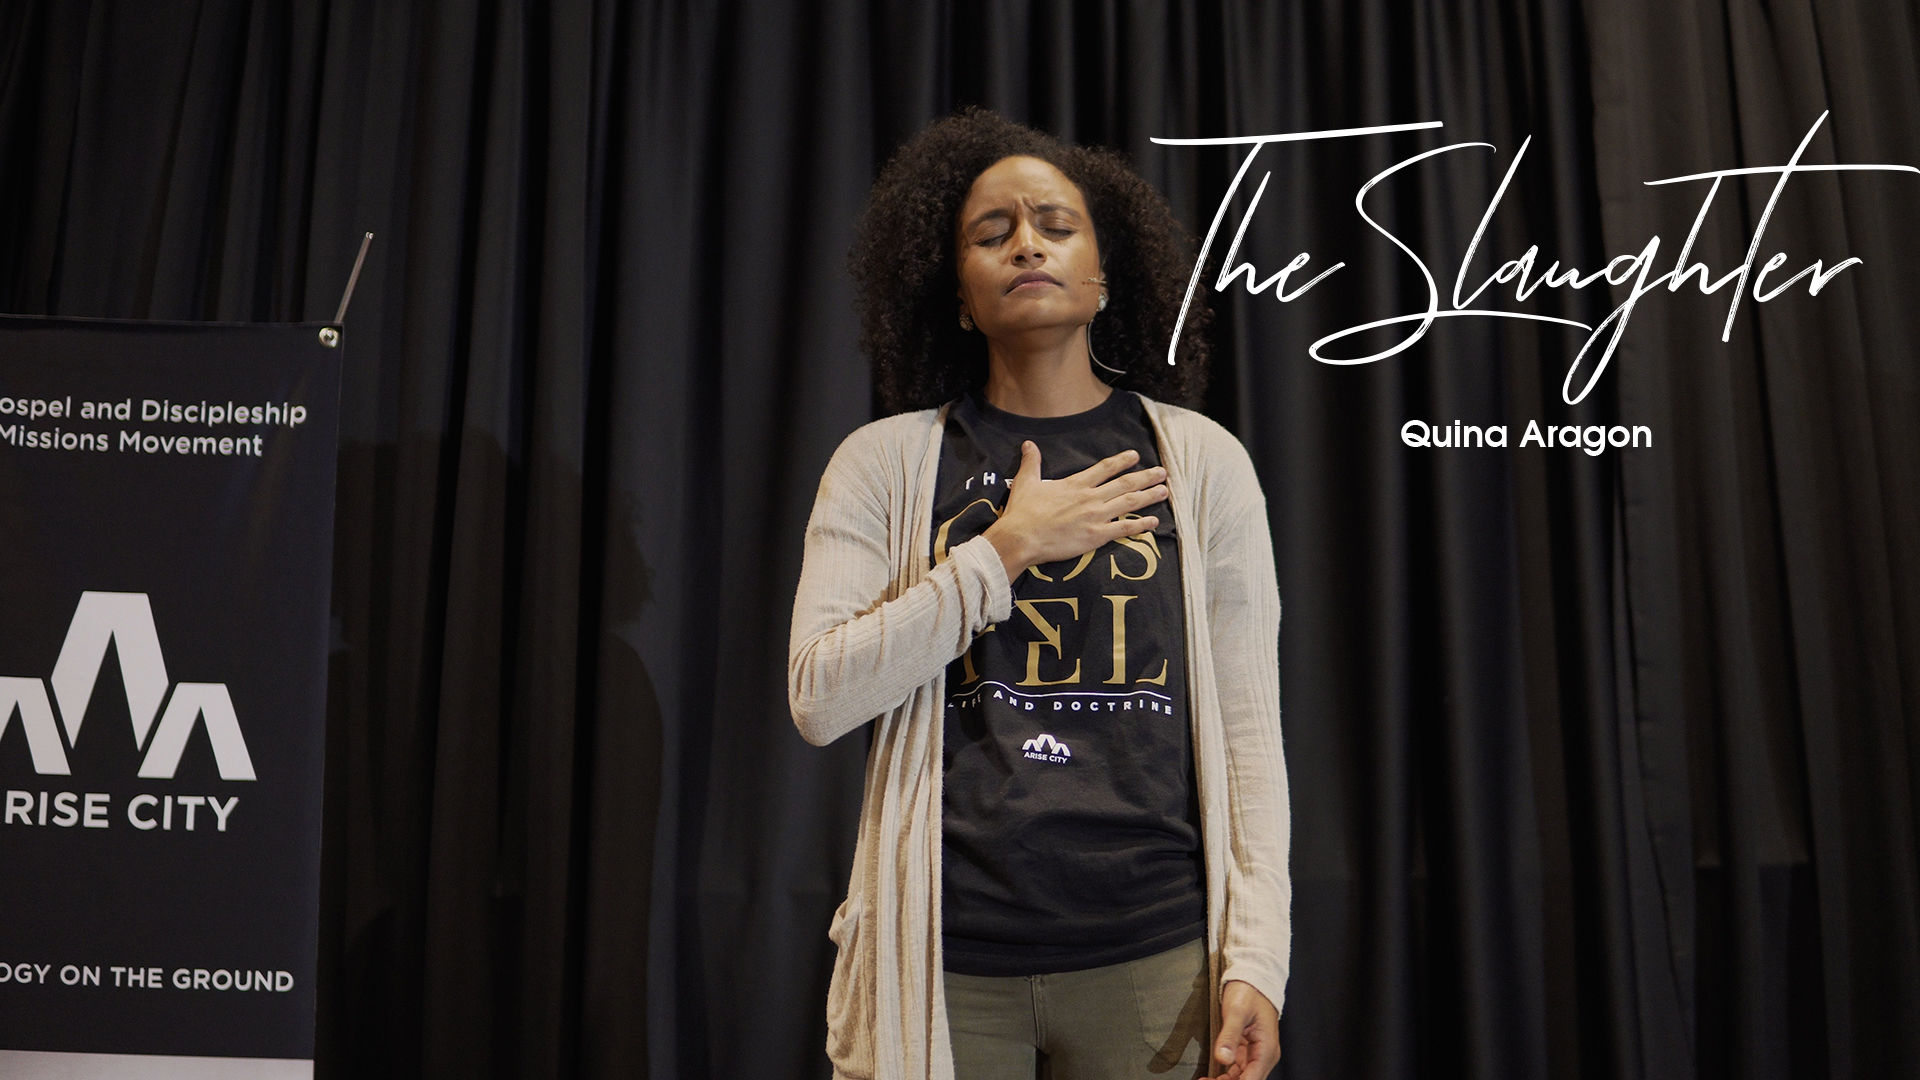 The Slaughter (LIVE Spoken Word) & Helping Immigrant Families